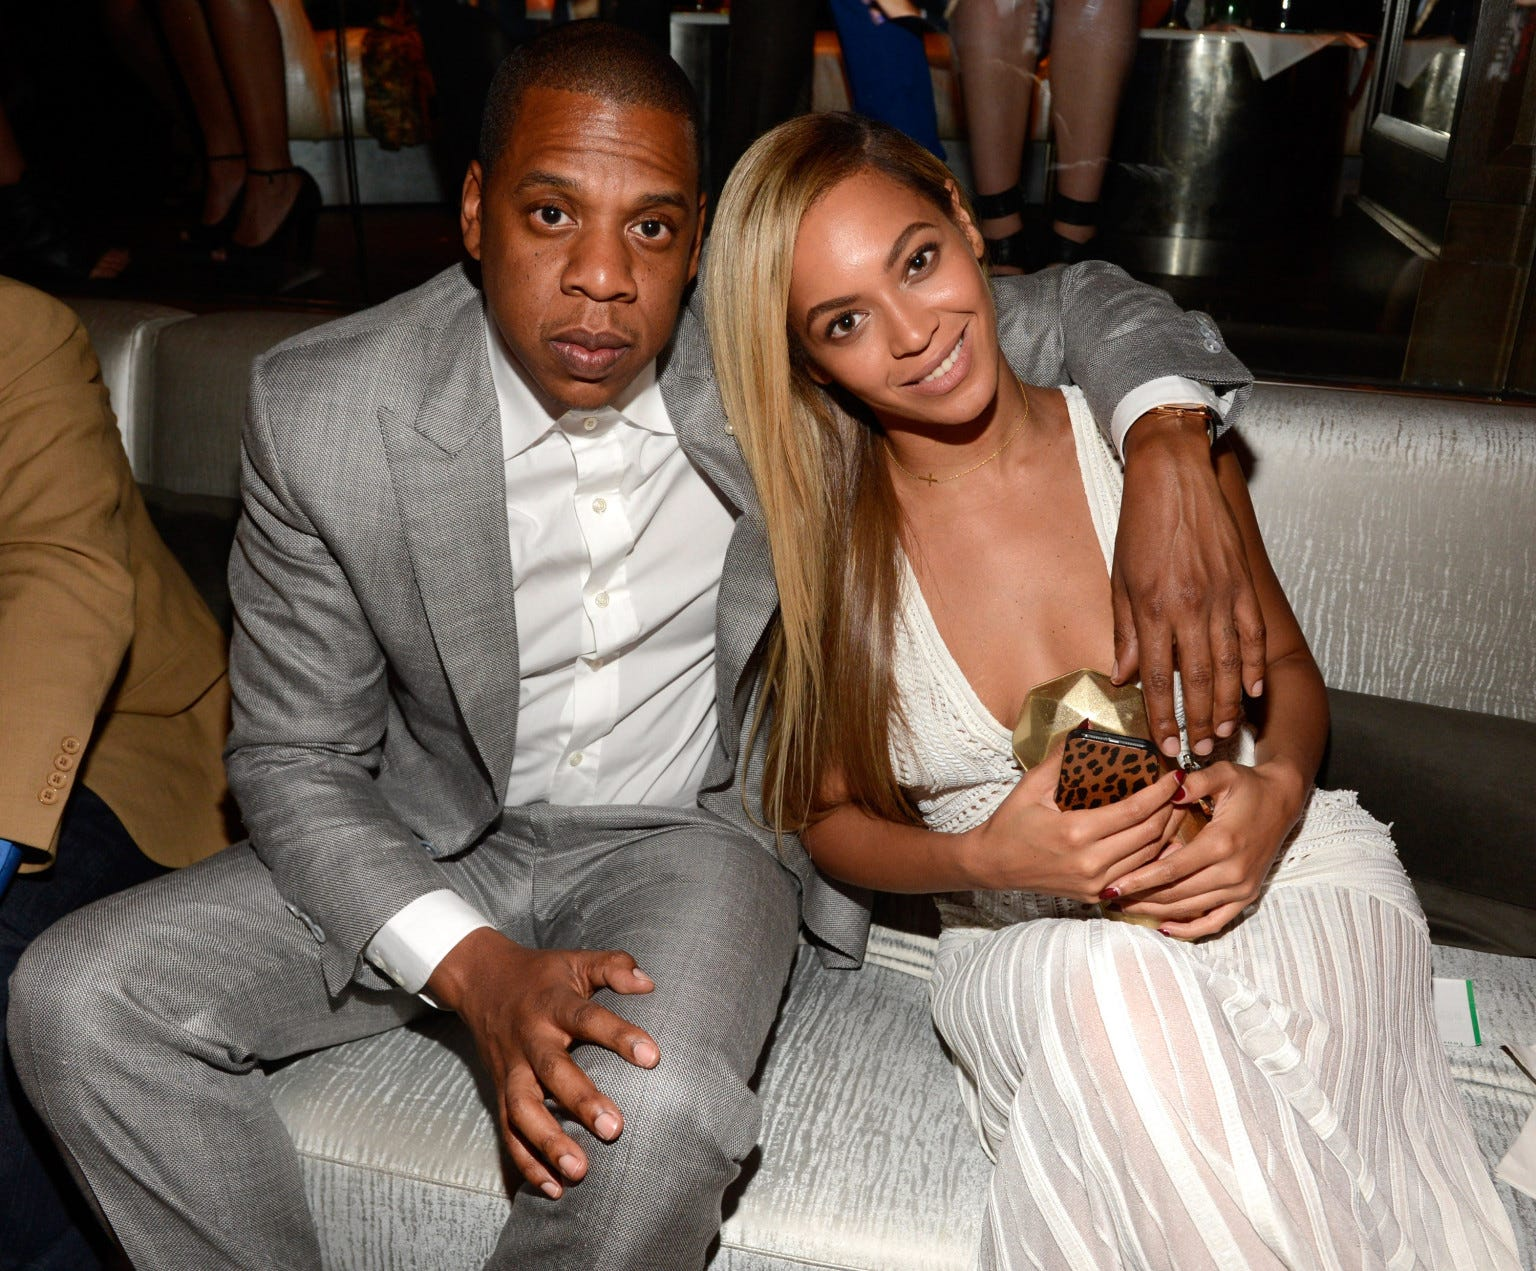 Jay Z and wife Beyonce Knowles, Jay Z admitted he cheated with her